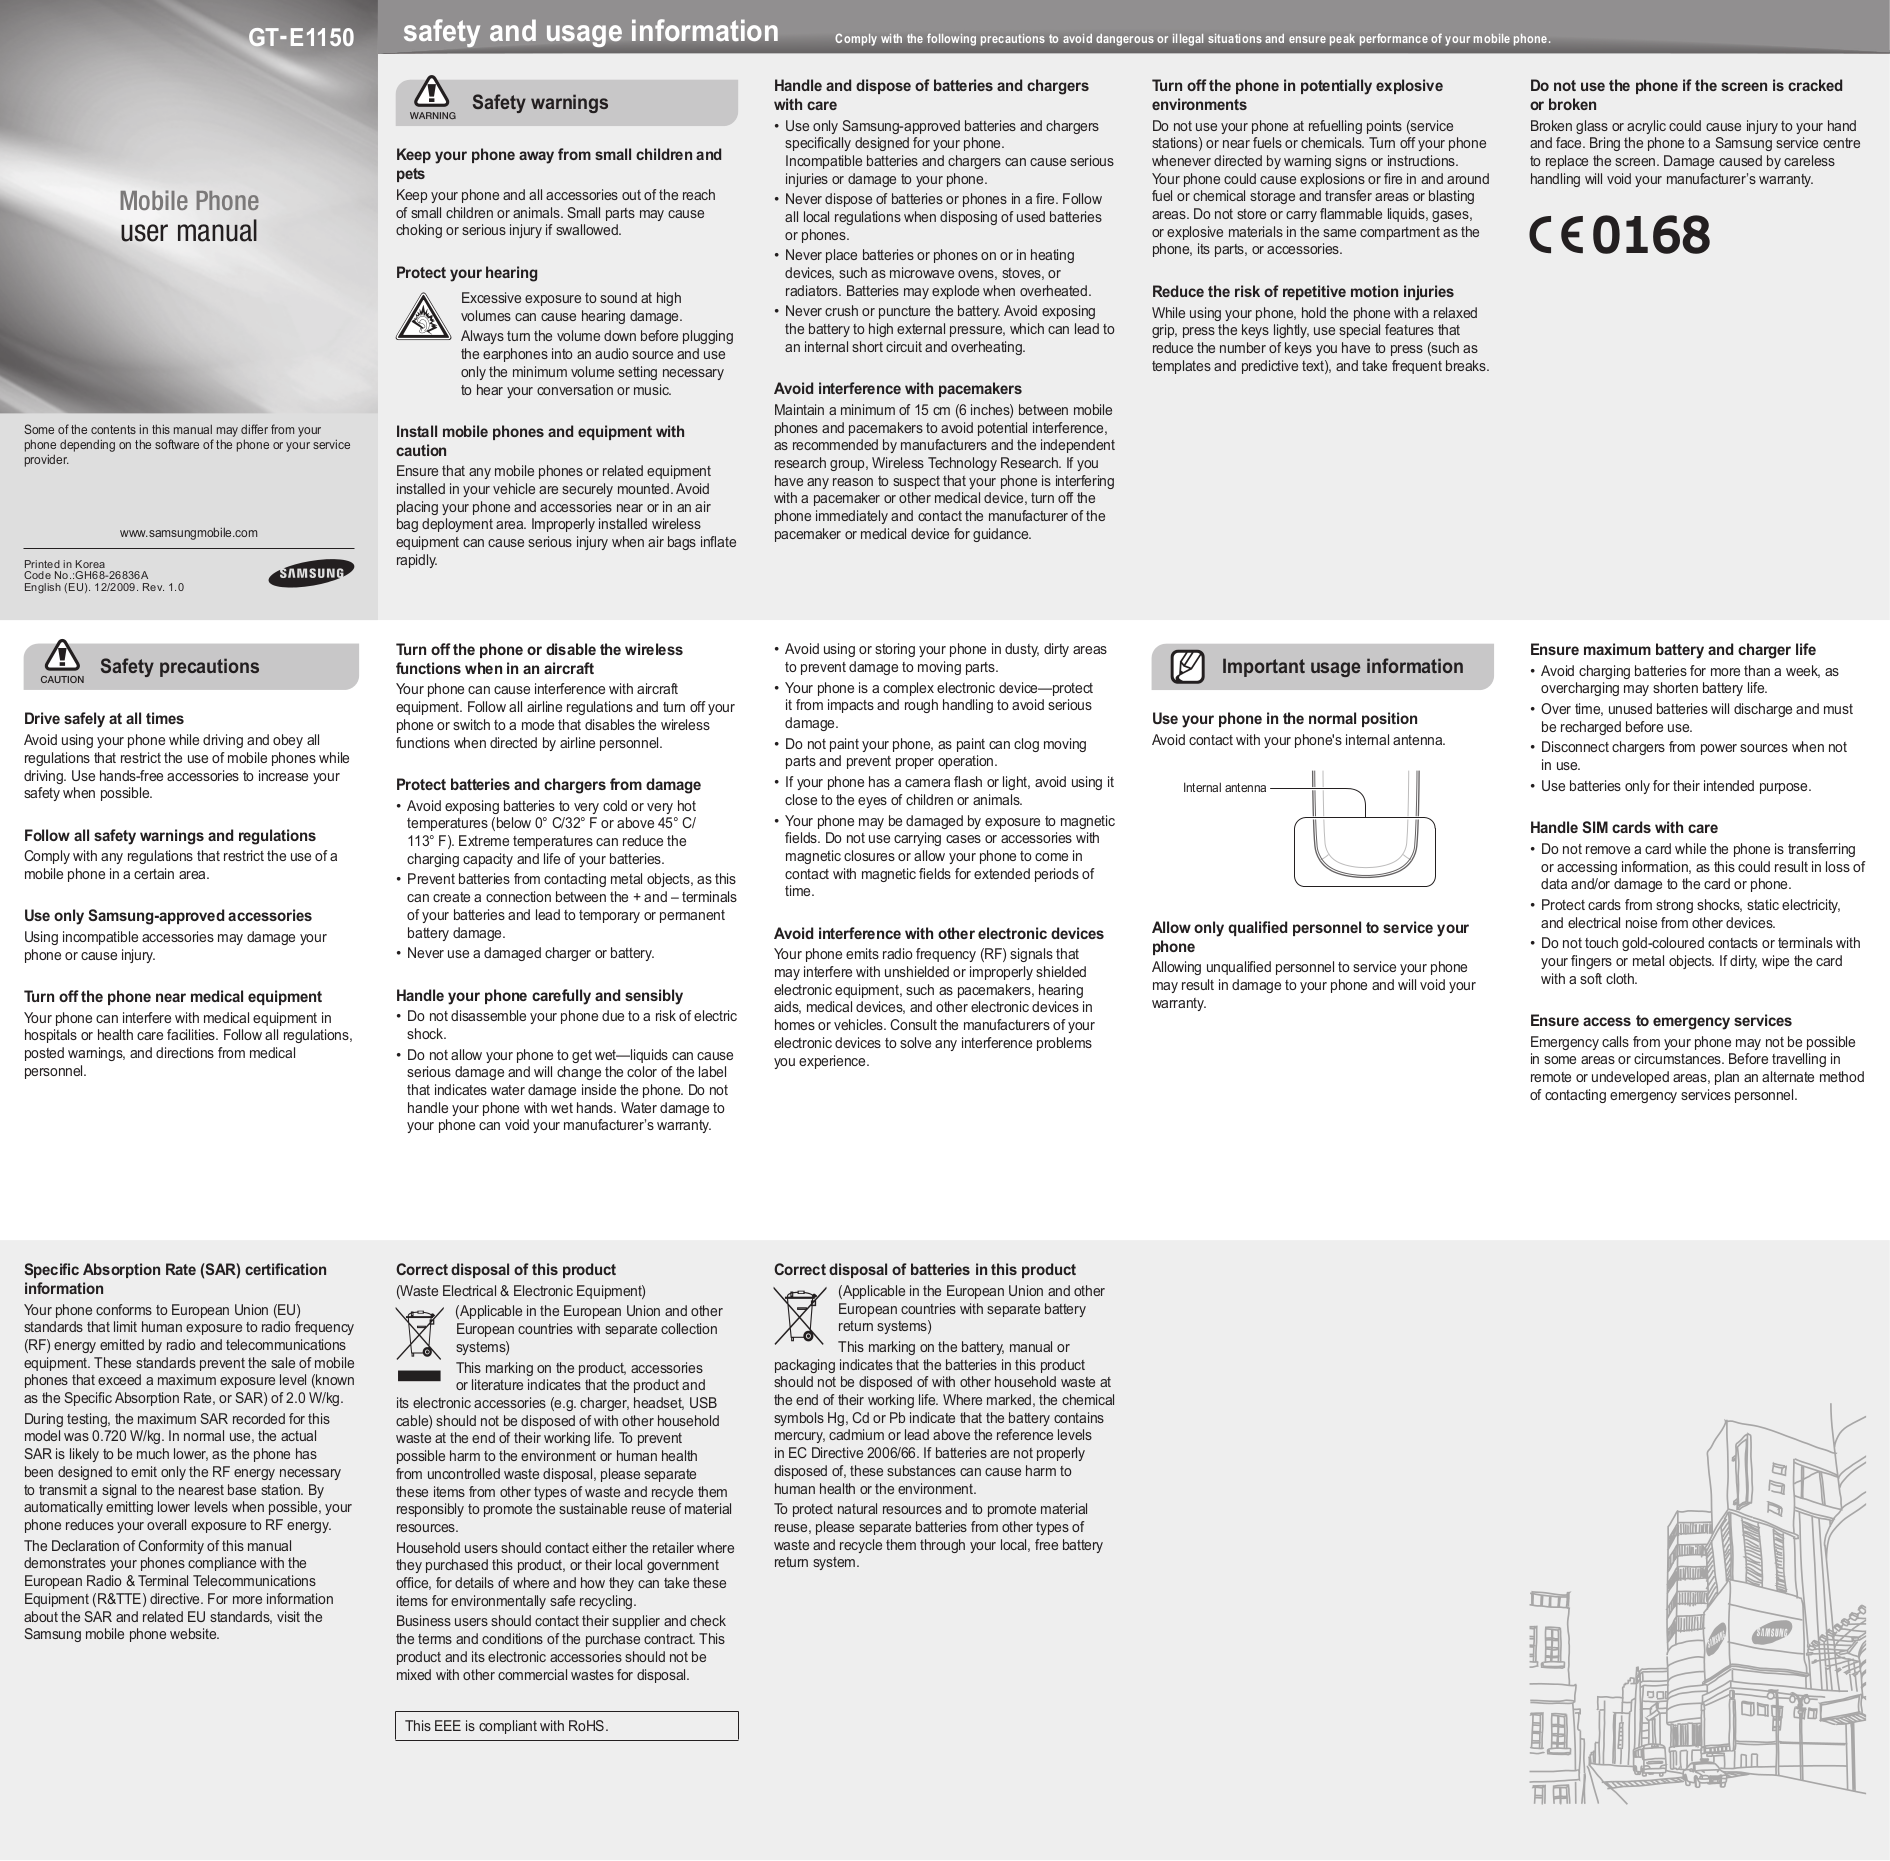 pdf for Samsung Cell Phone E1150 manual